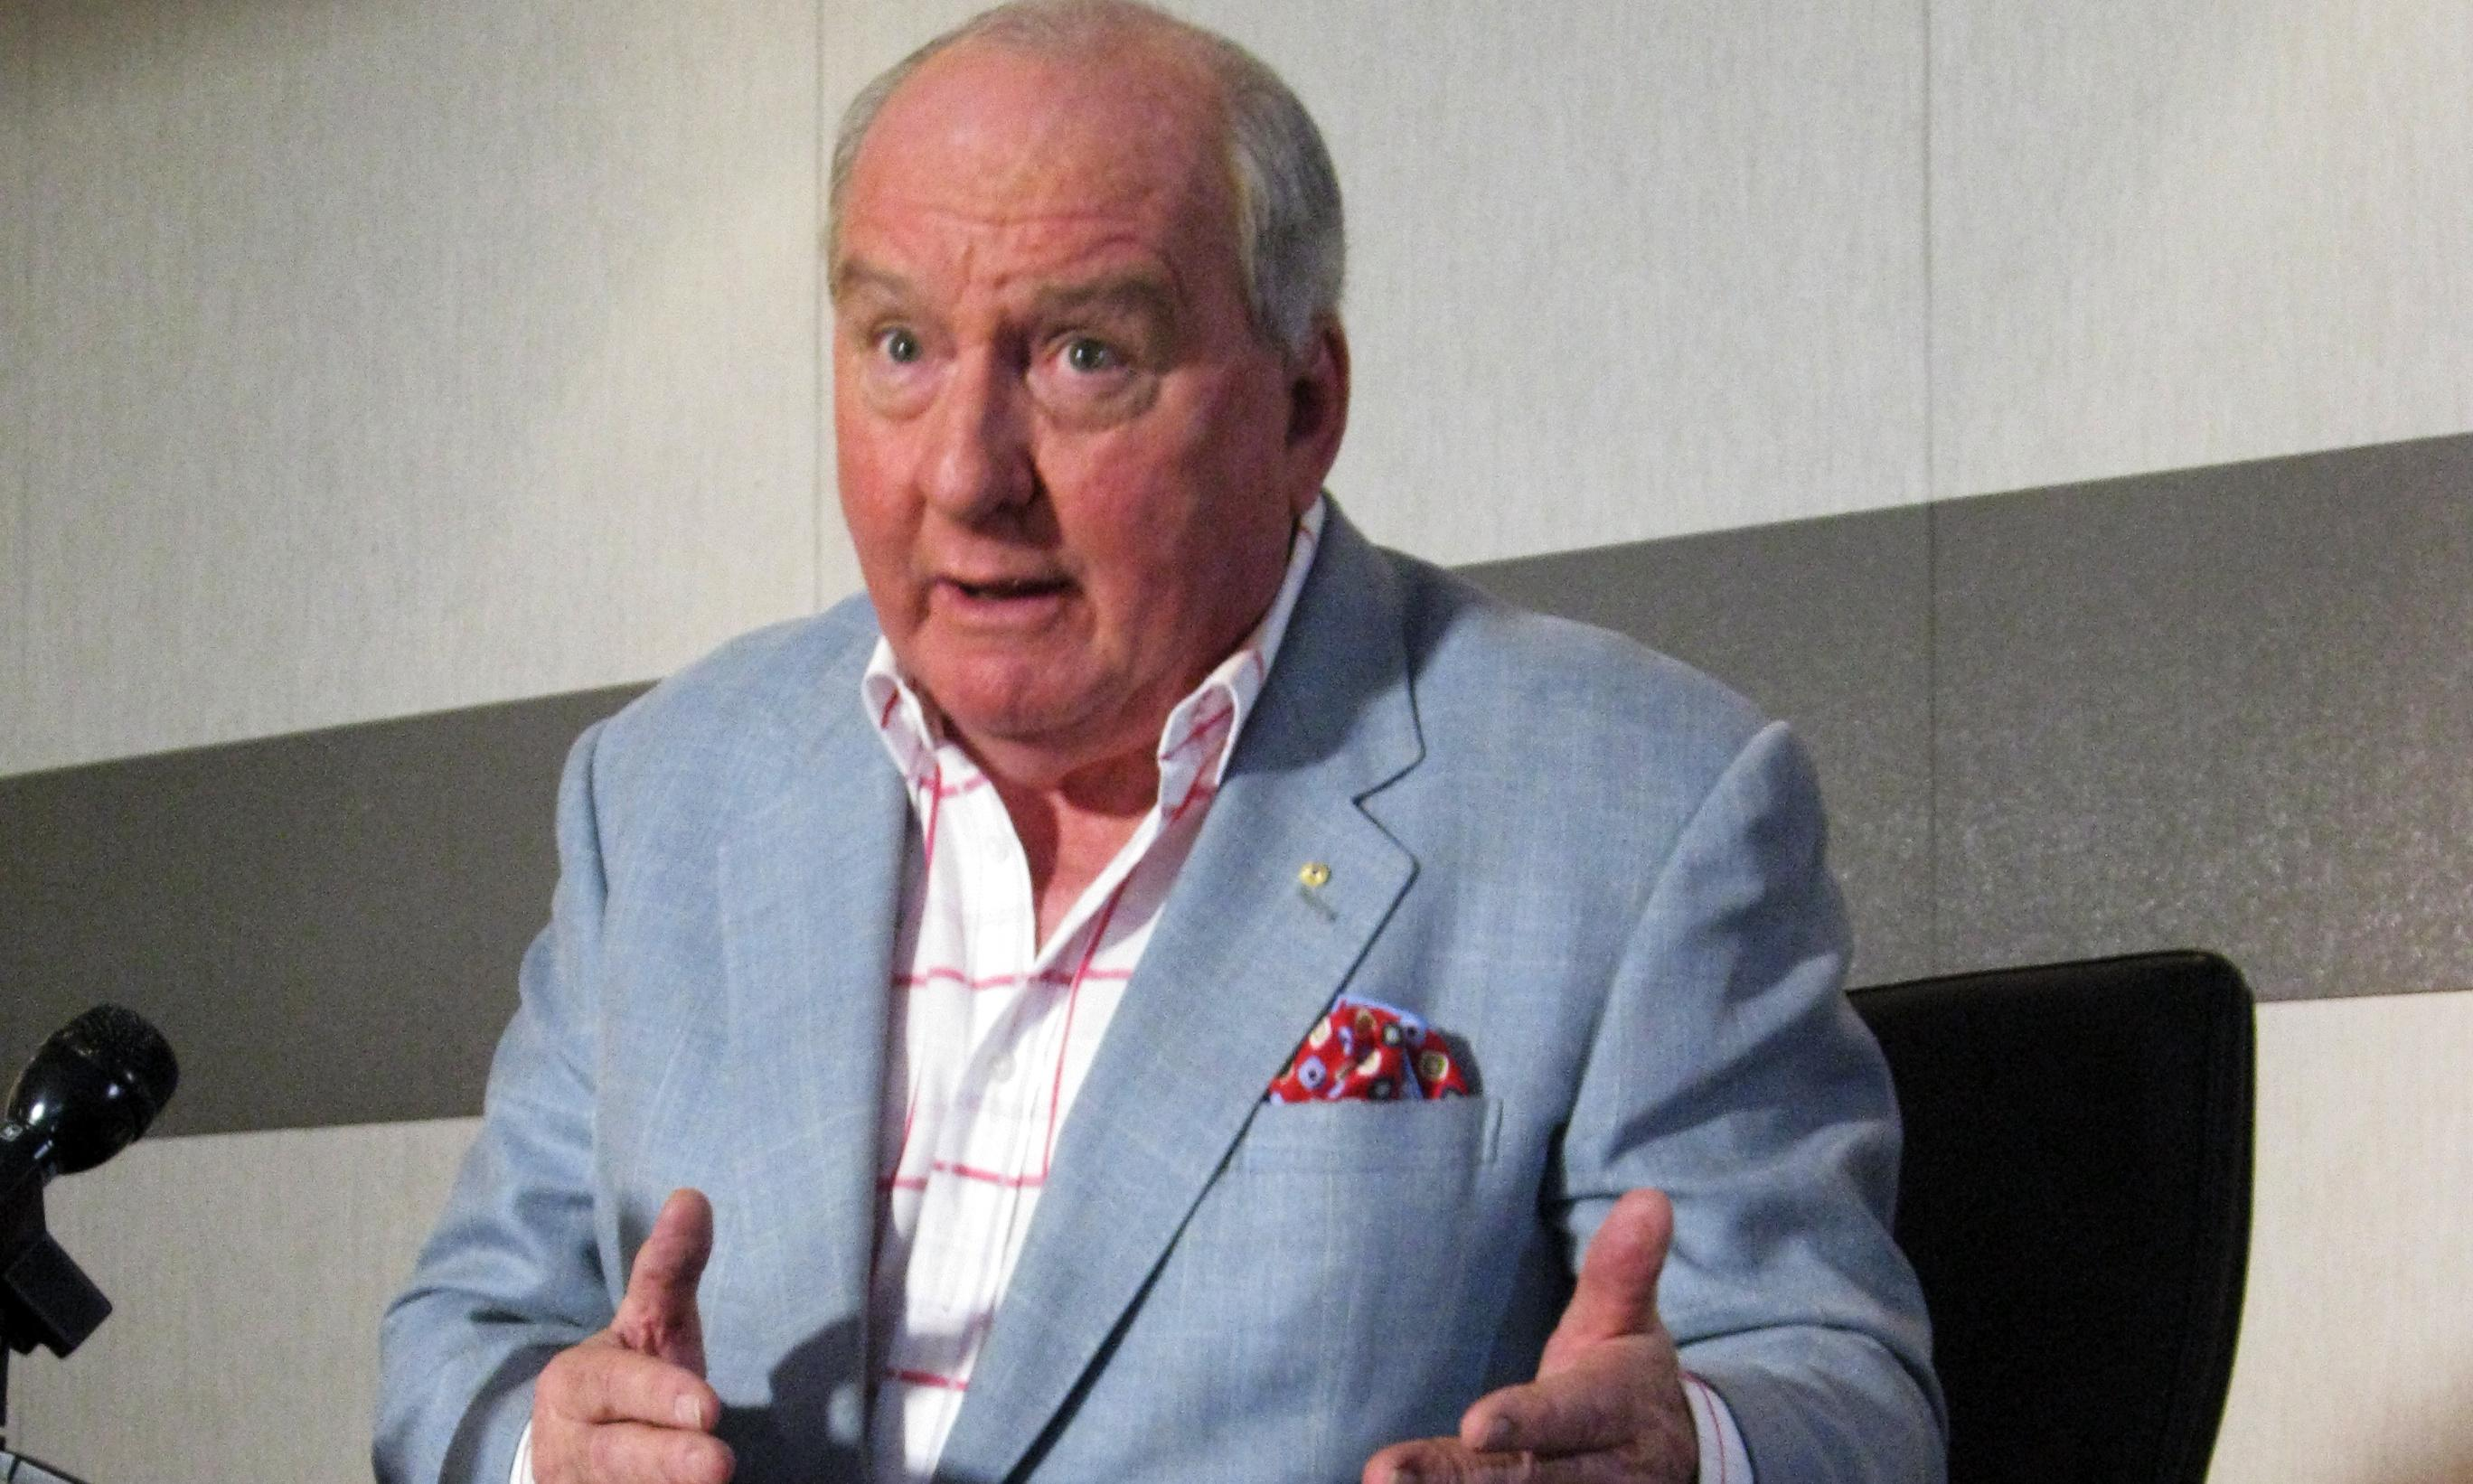 Alan Jones's radio show loses hundreds of advertisers since Jacinda Ardern storm